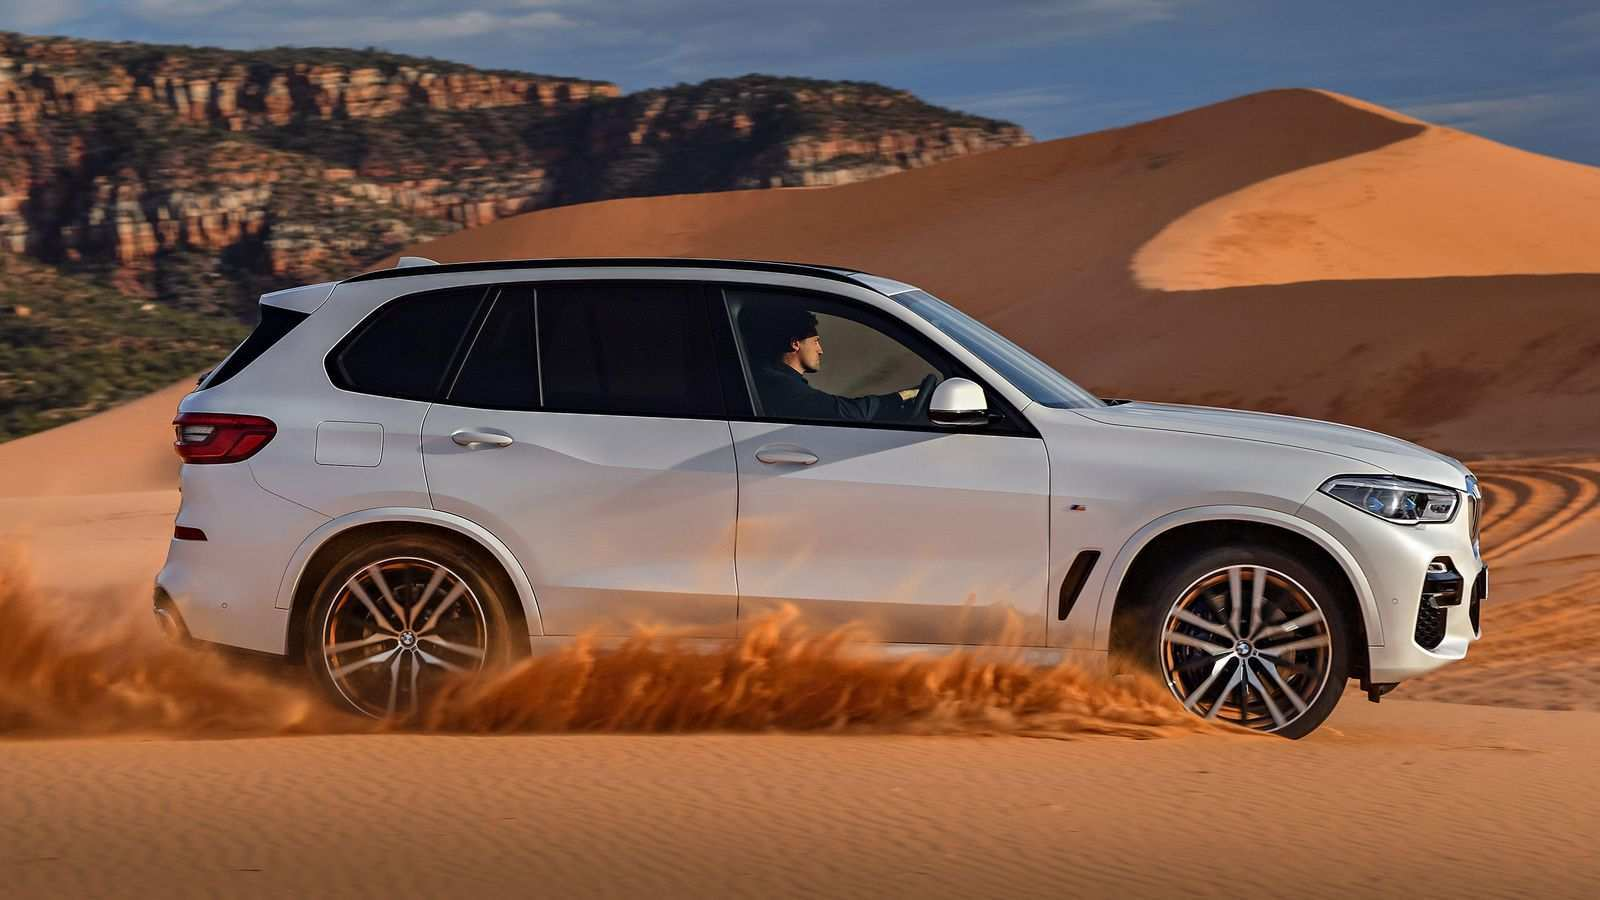 41 Gallery of 2020 Gle 350 Vs BMW X5 Redesign with 2020 Gle 350 Vs BMW X5